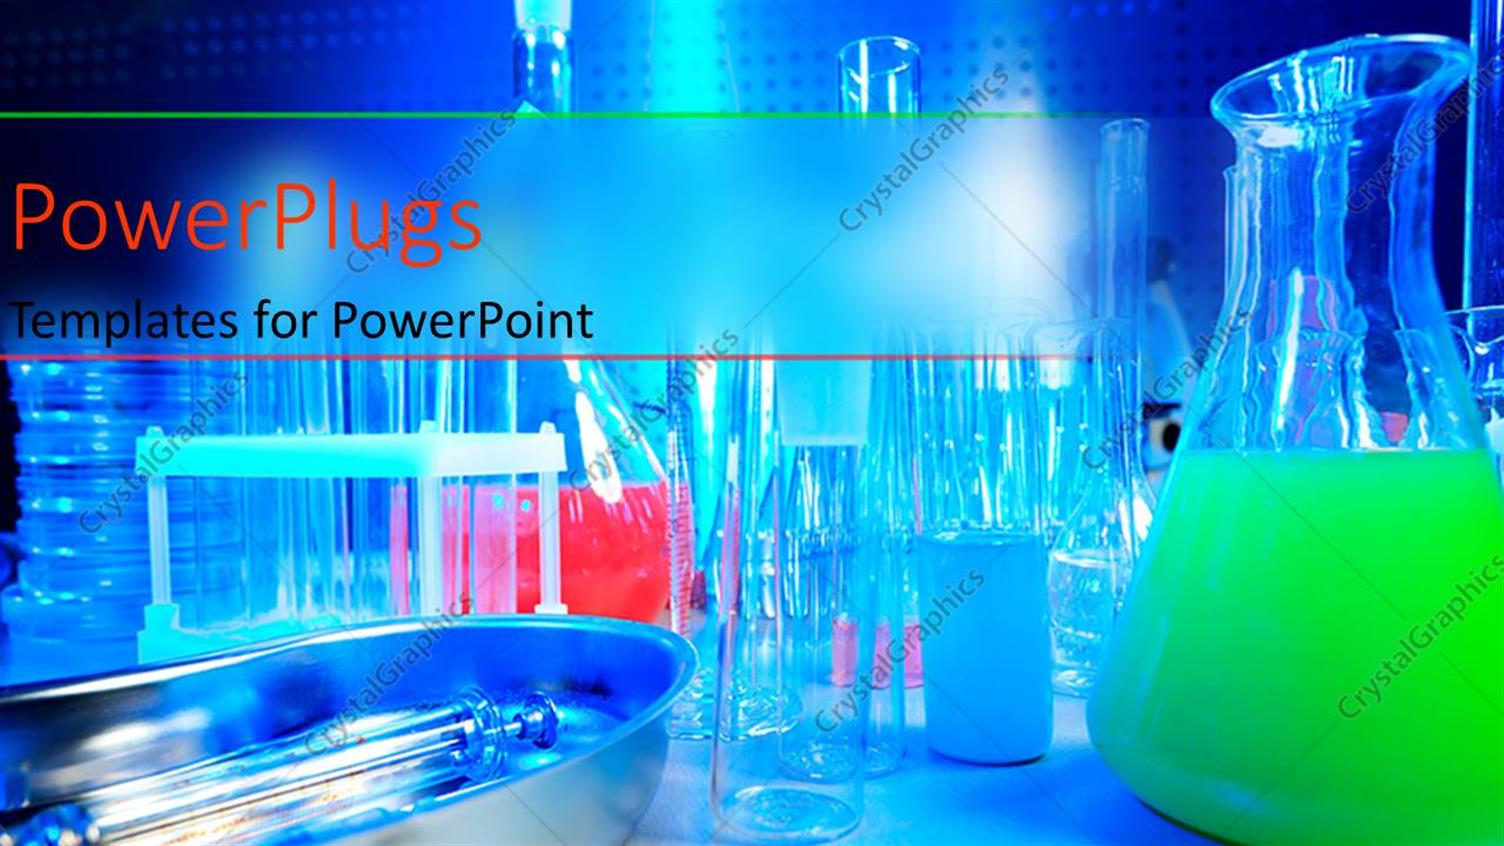 Free powerpoint science templates choice image templates example free powerpoint science templates gallery templates example free scientific powerpoint templates image collections templates free powerpoint toneelgroepblik Gallery